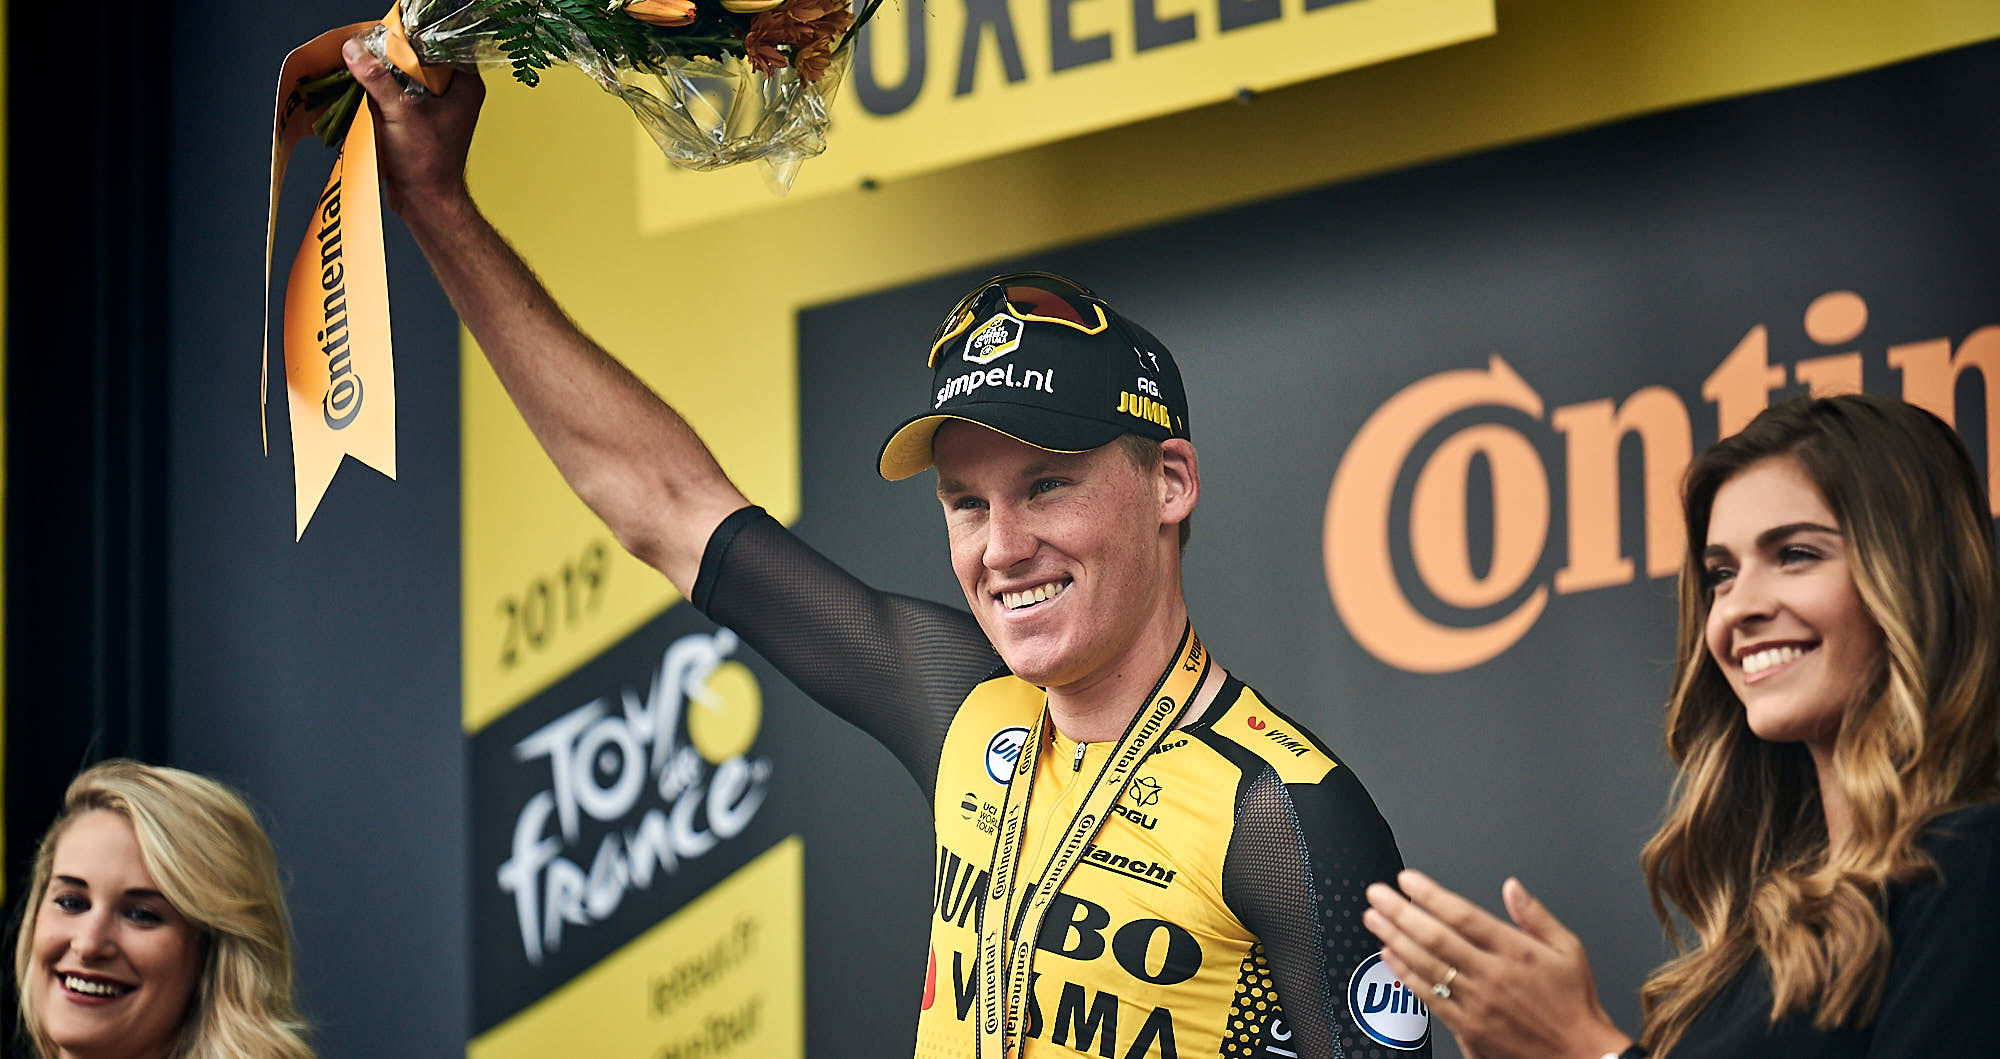 Mike Teunissen on the 2019 Tour de France stage 1 podium in Brussels